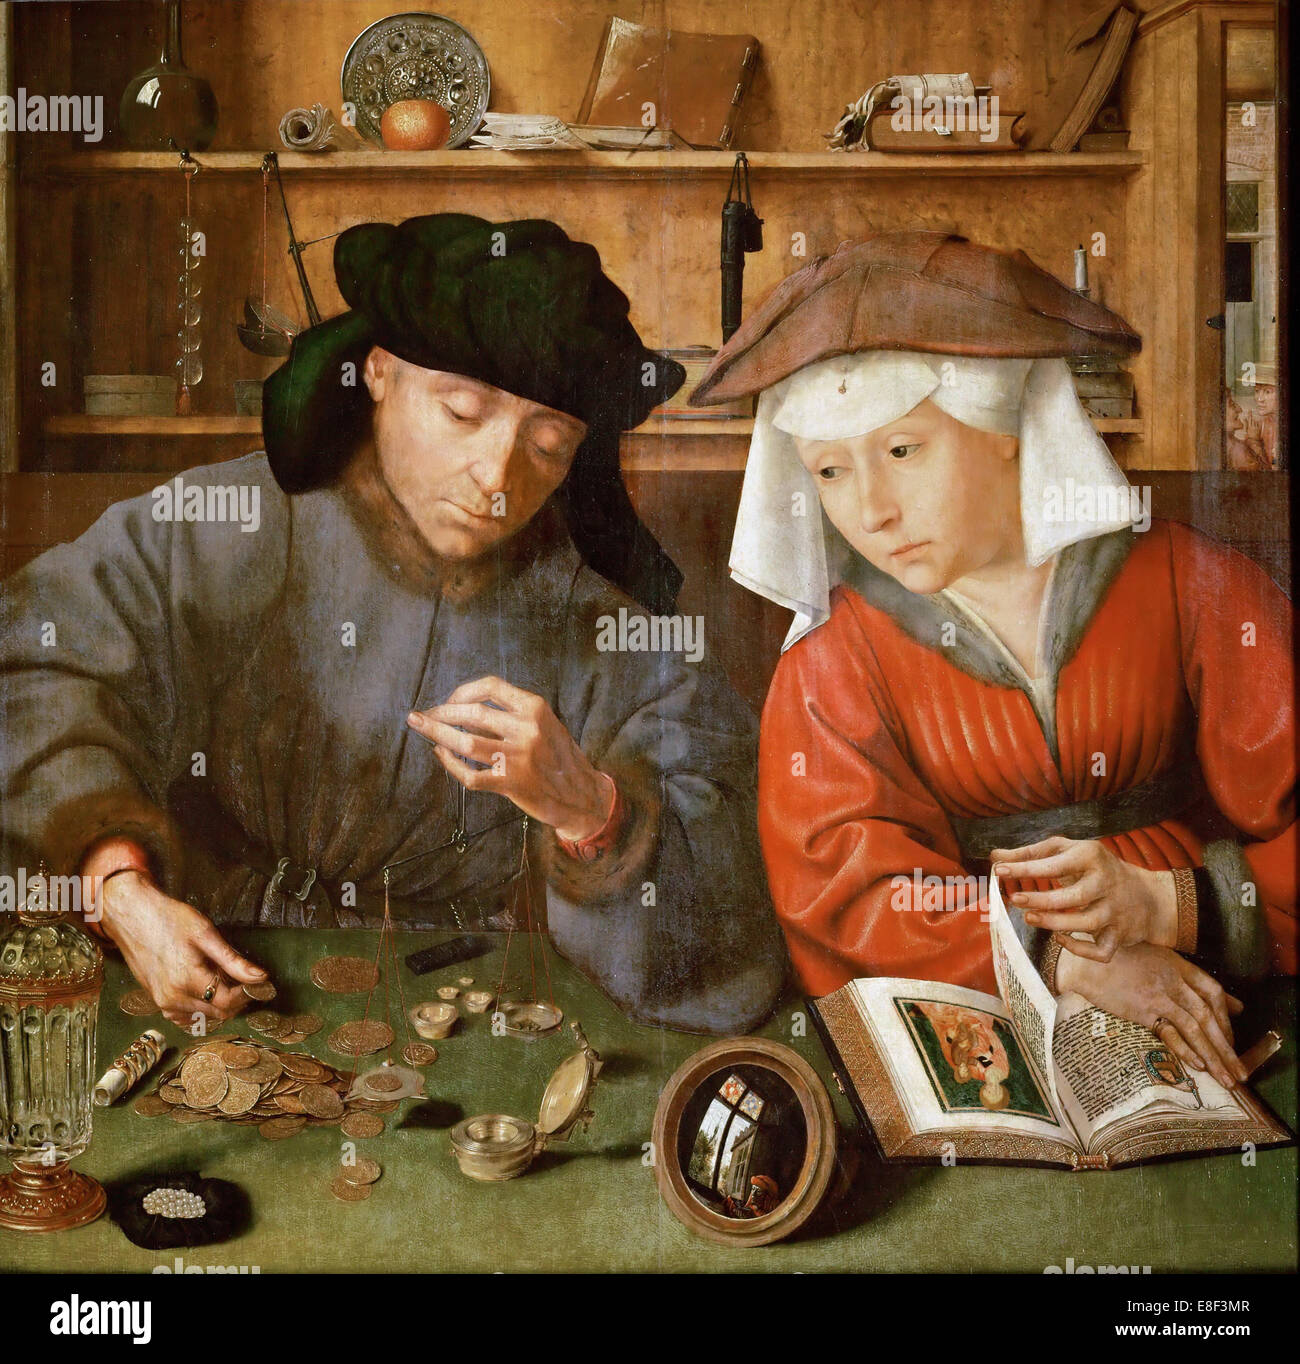 The Moneylender and his Wife. Artist: Massys, Quentin (1466?1530) - Stock Image